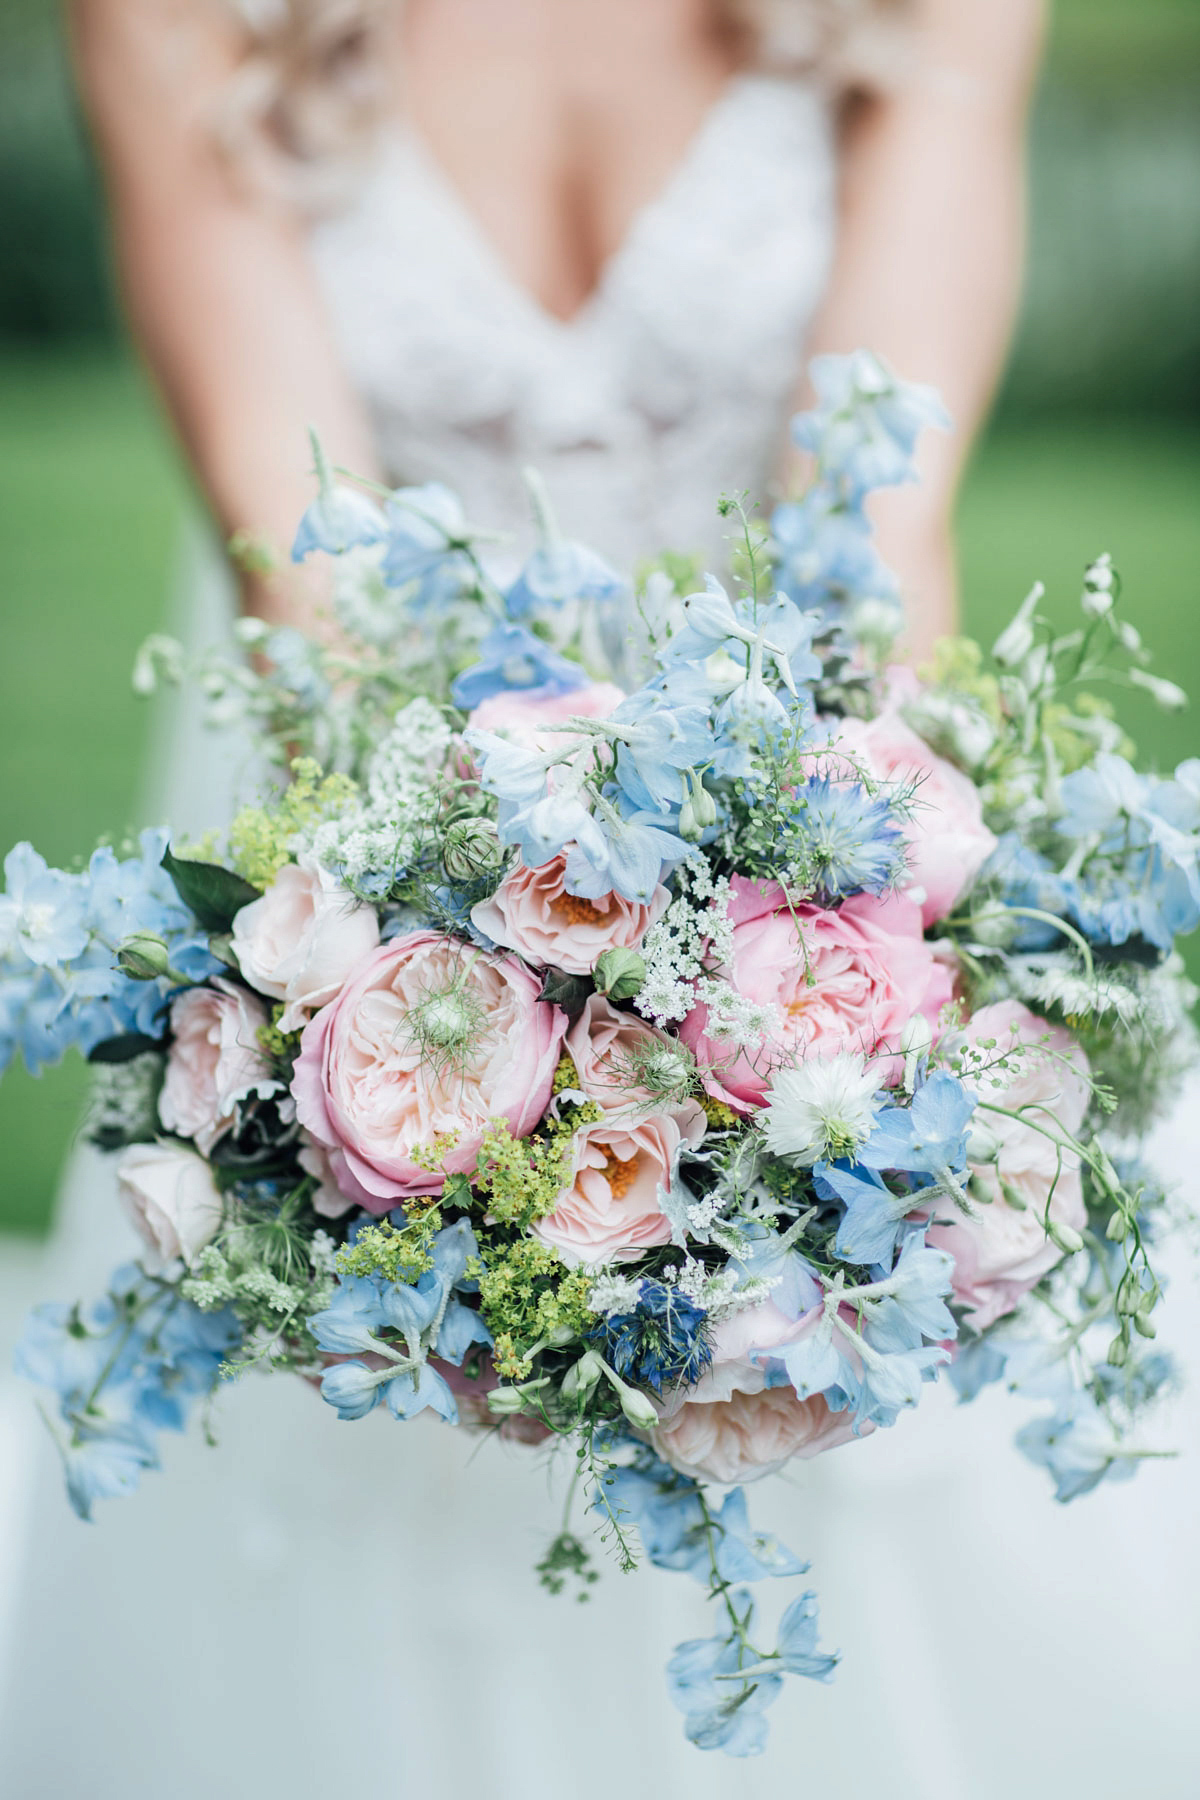 e57fb5468967 ... pale blue vera wang walled garden wedding - A Vera Wang Gown for a  Whimsical and ...